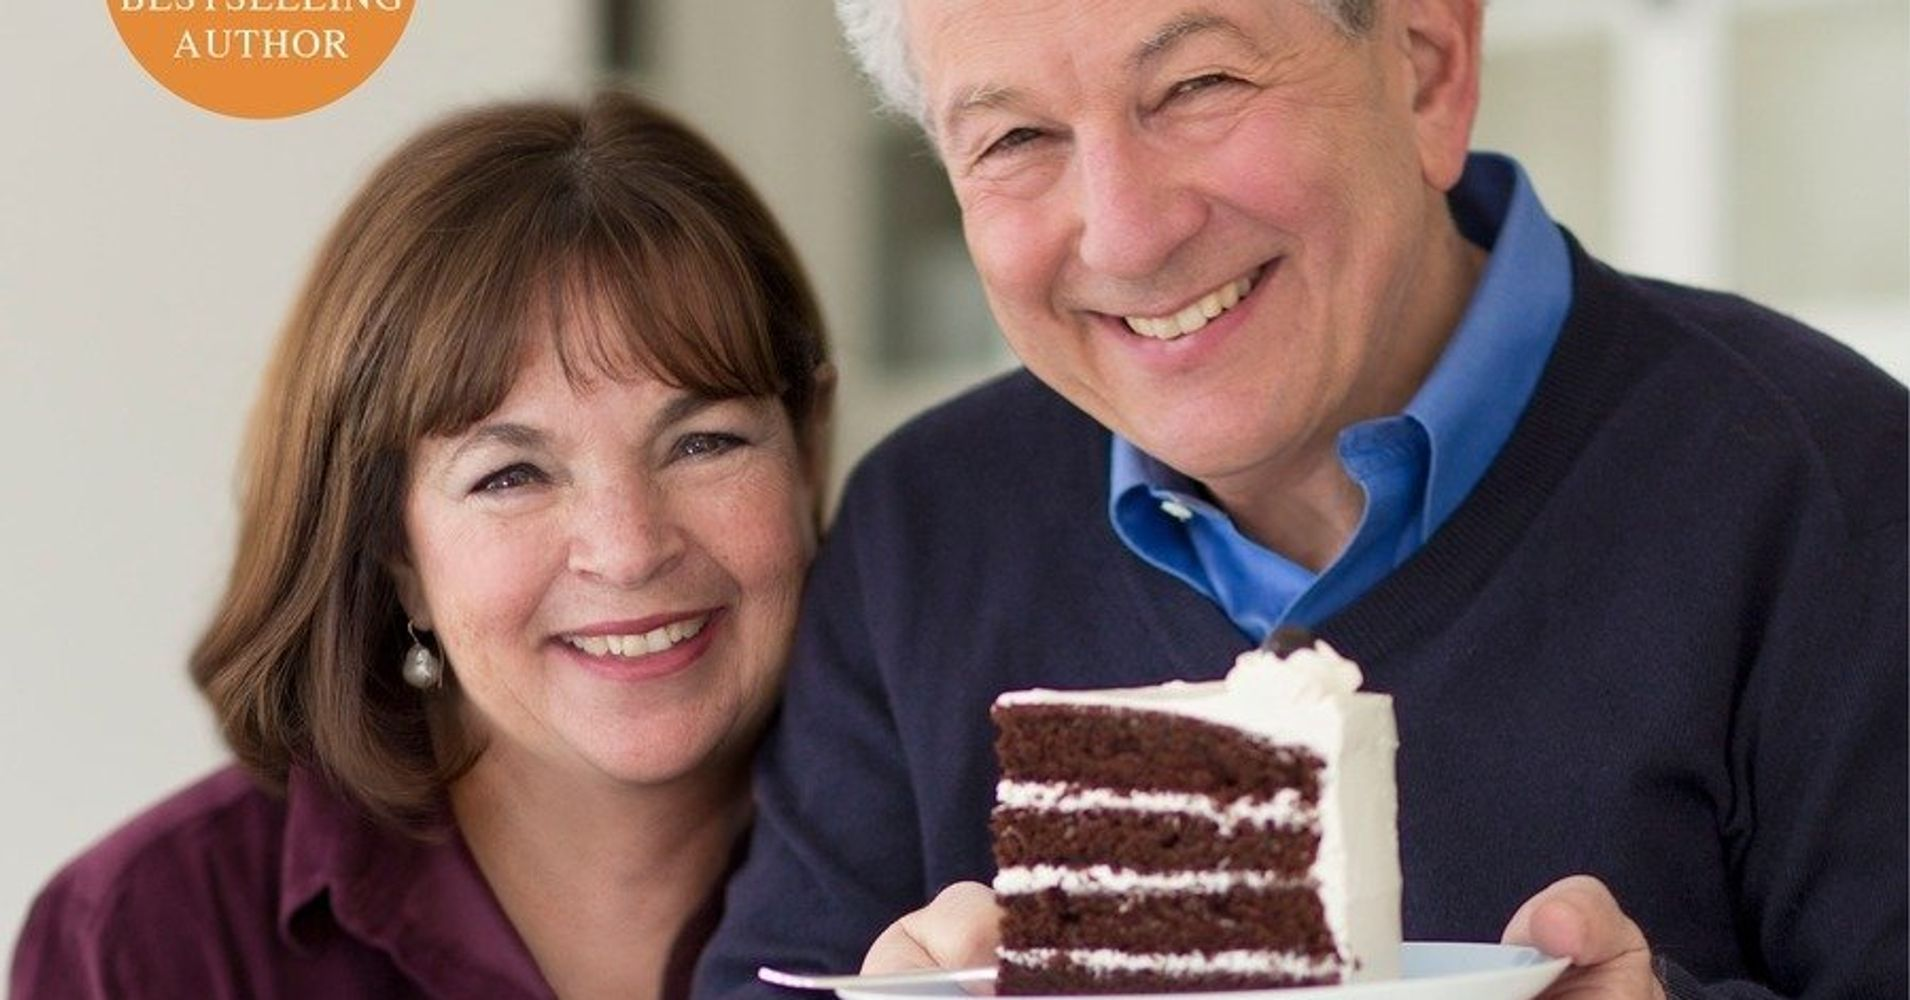 That Cake From Ina Garten S New Book Is Actually Really Complicated To Make Huffpost